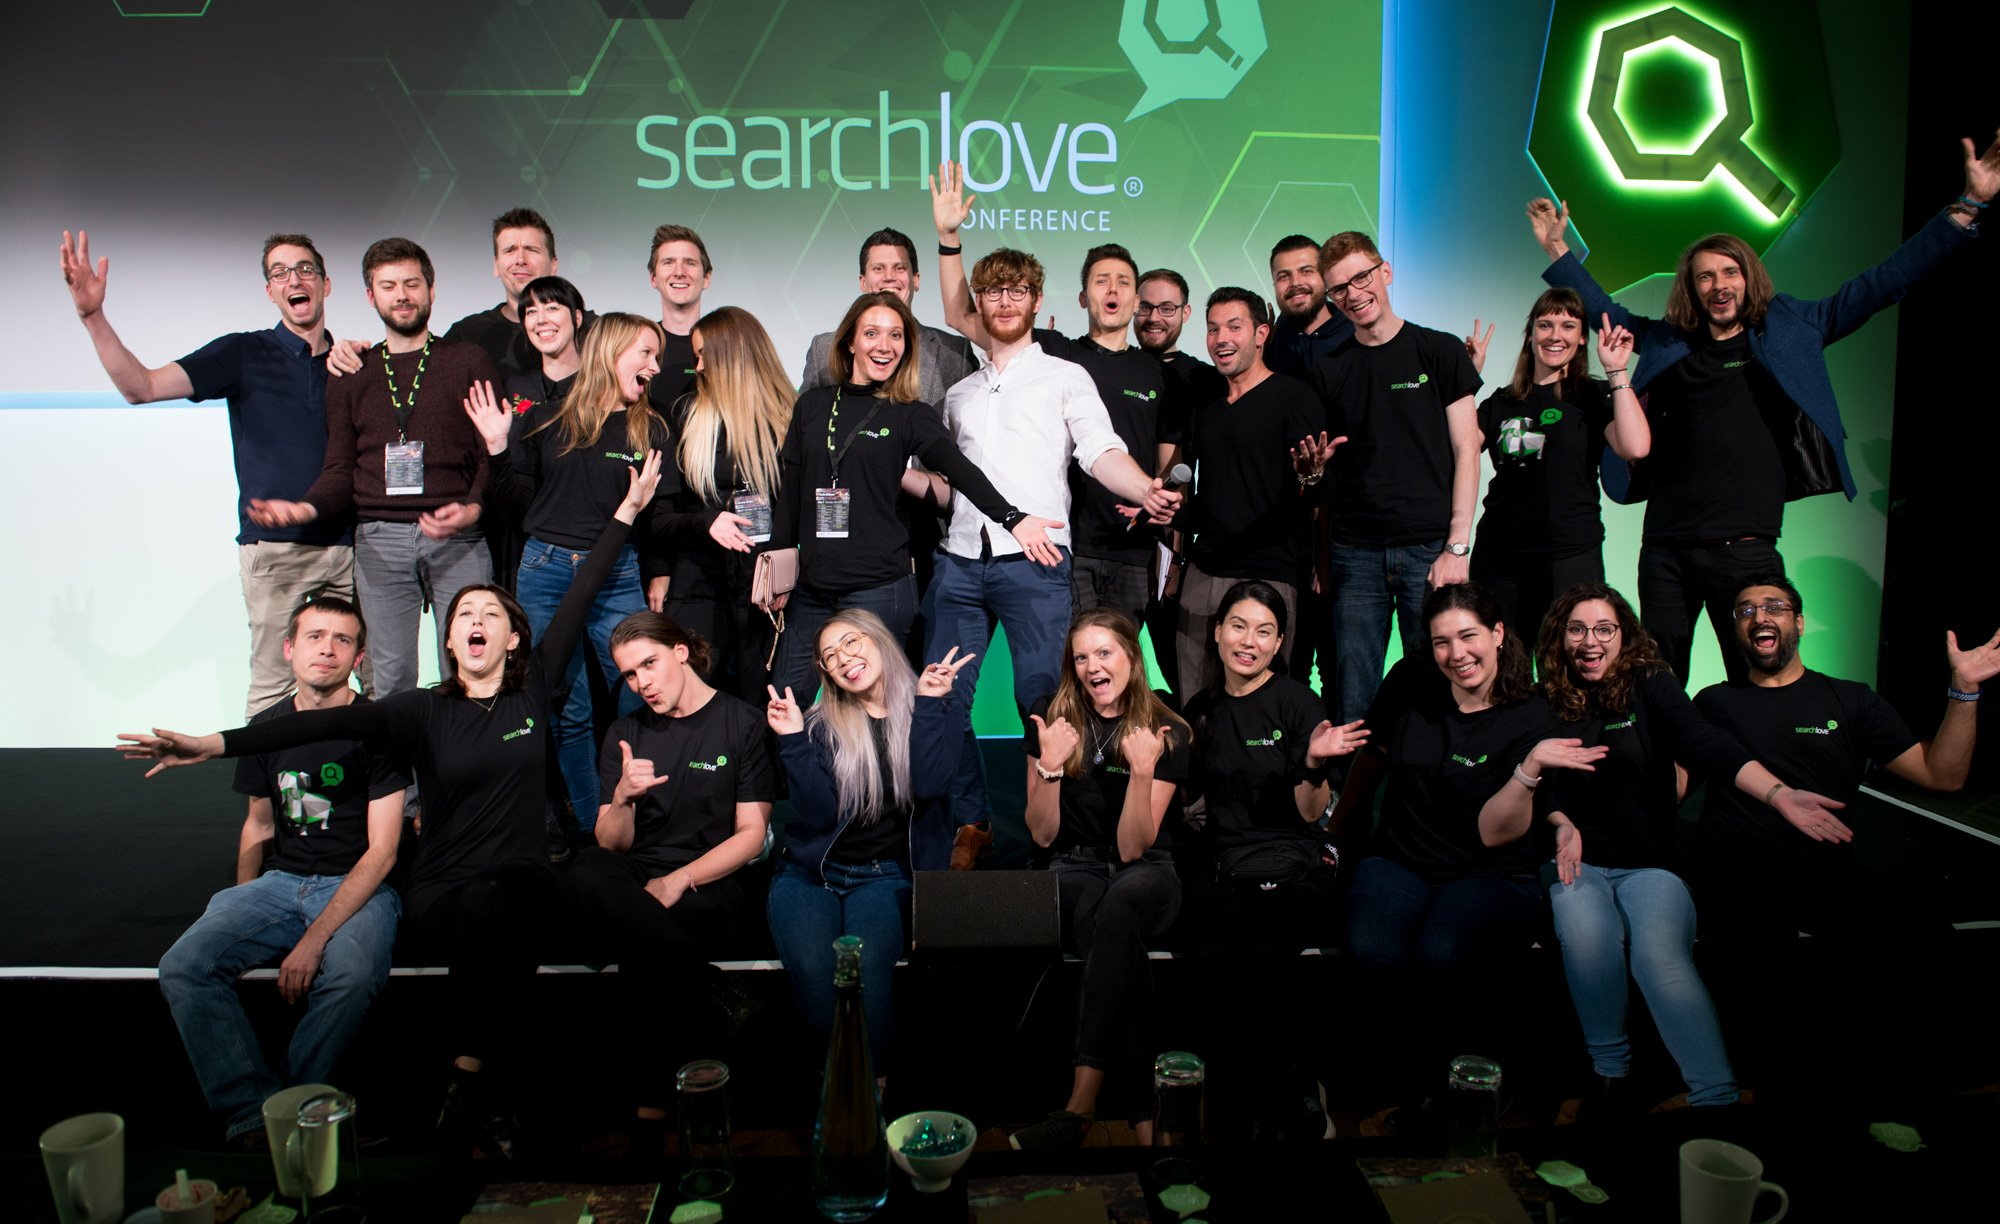 SearchLove London 2019 - Slides Roundup